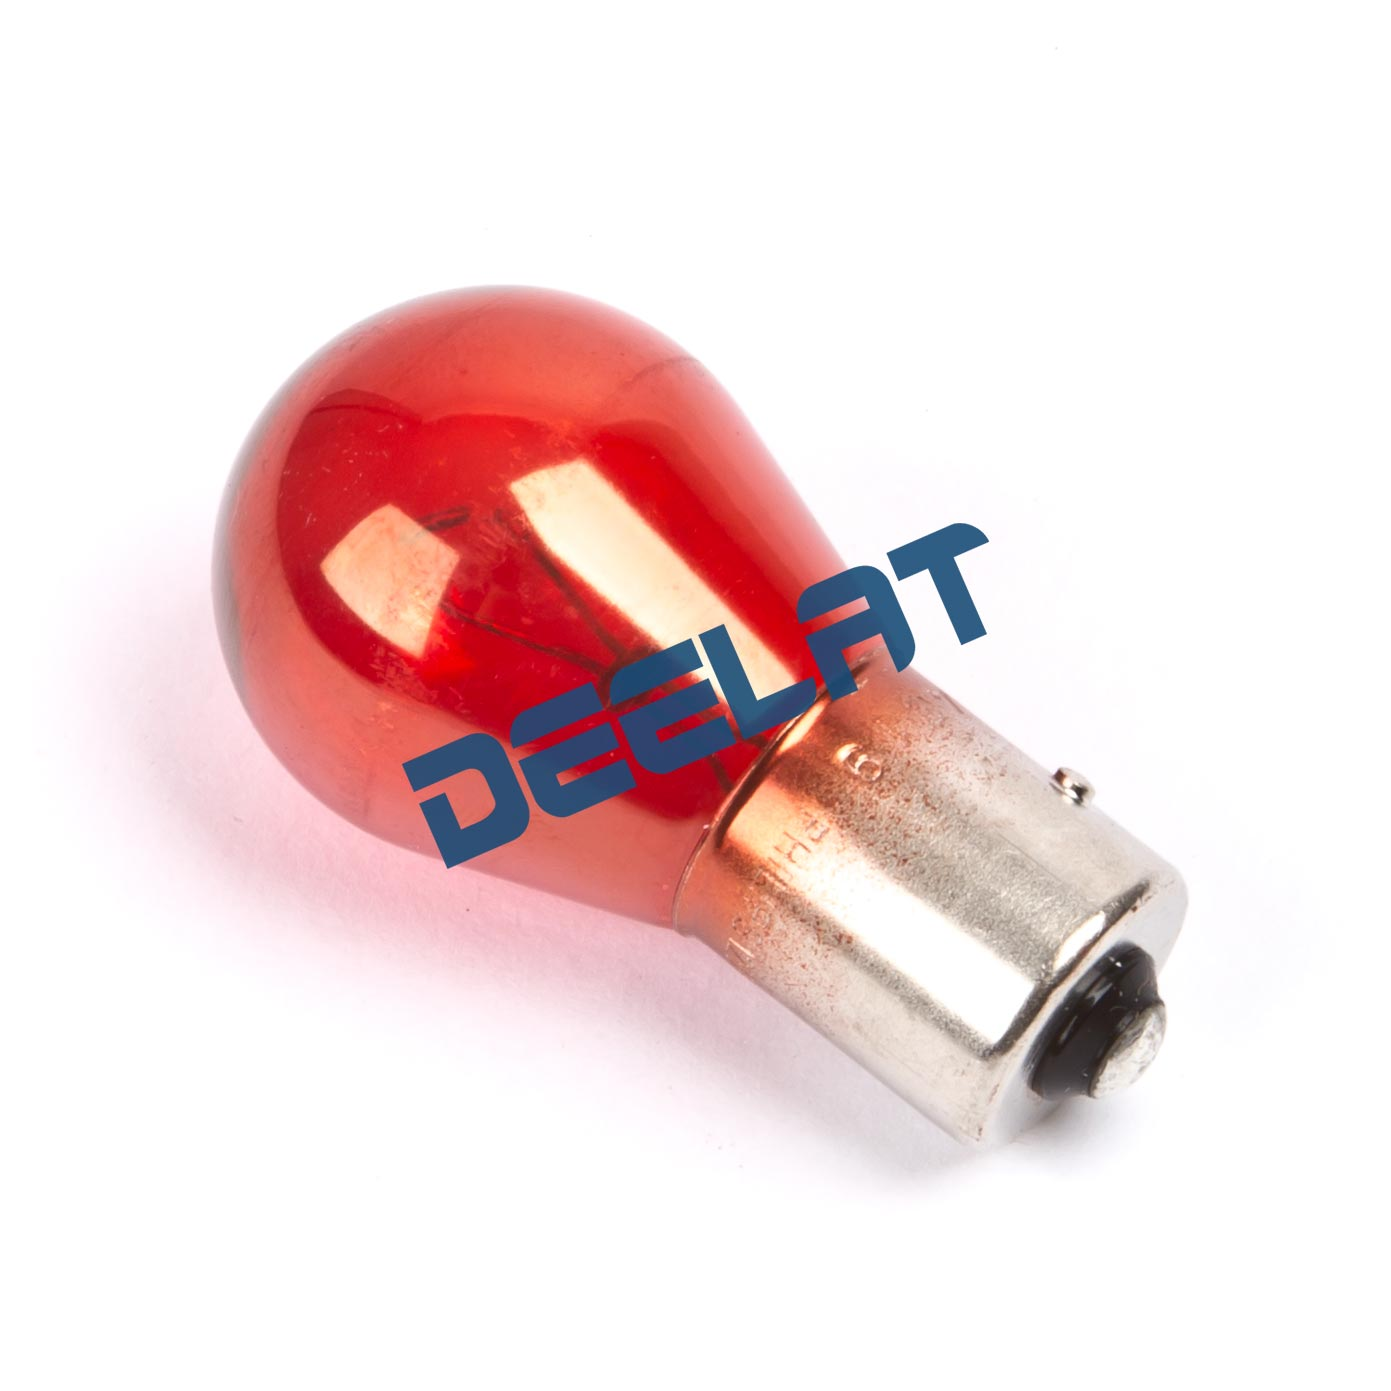 Deelat blog replacement brake lights how to buy and for Which light bulb to buy